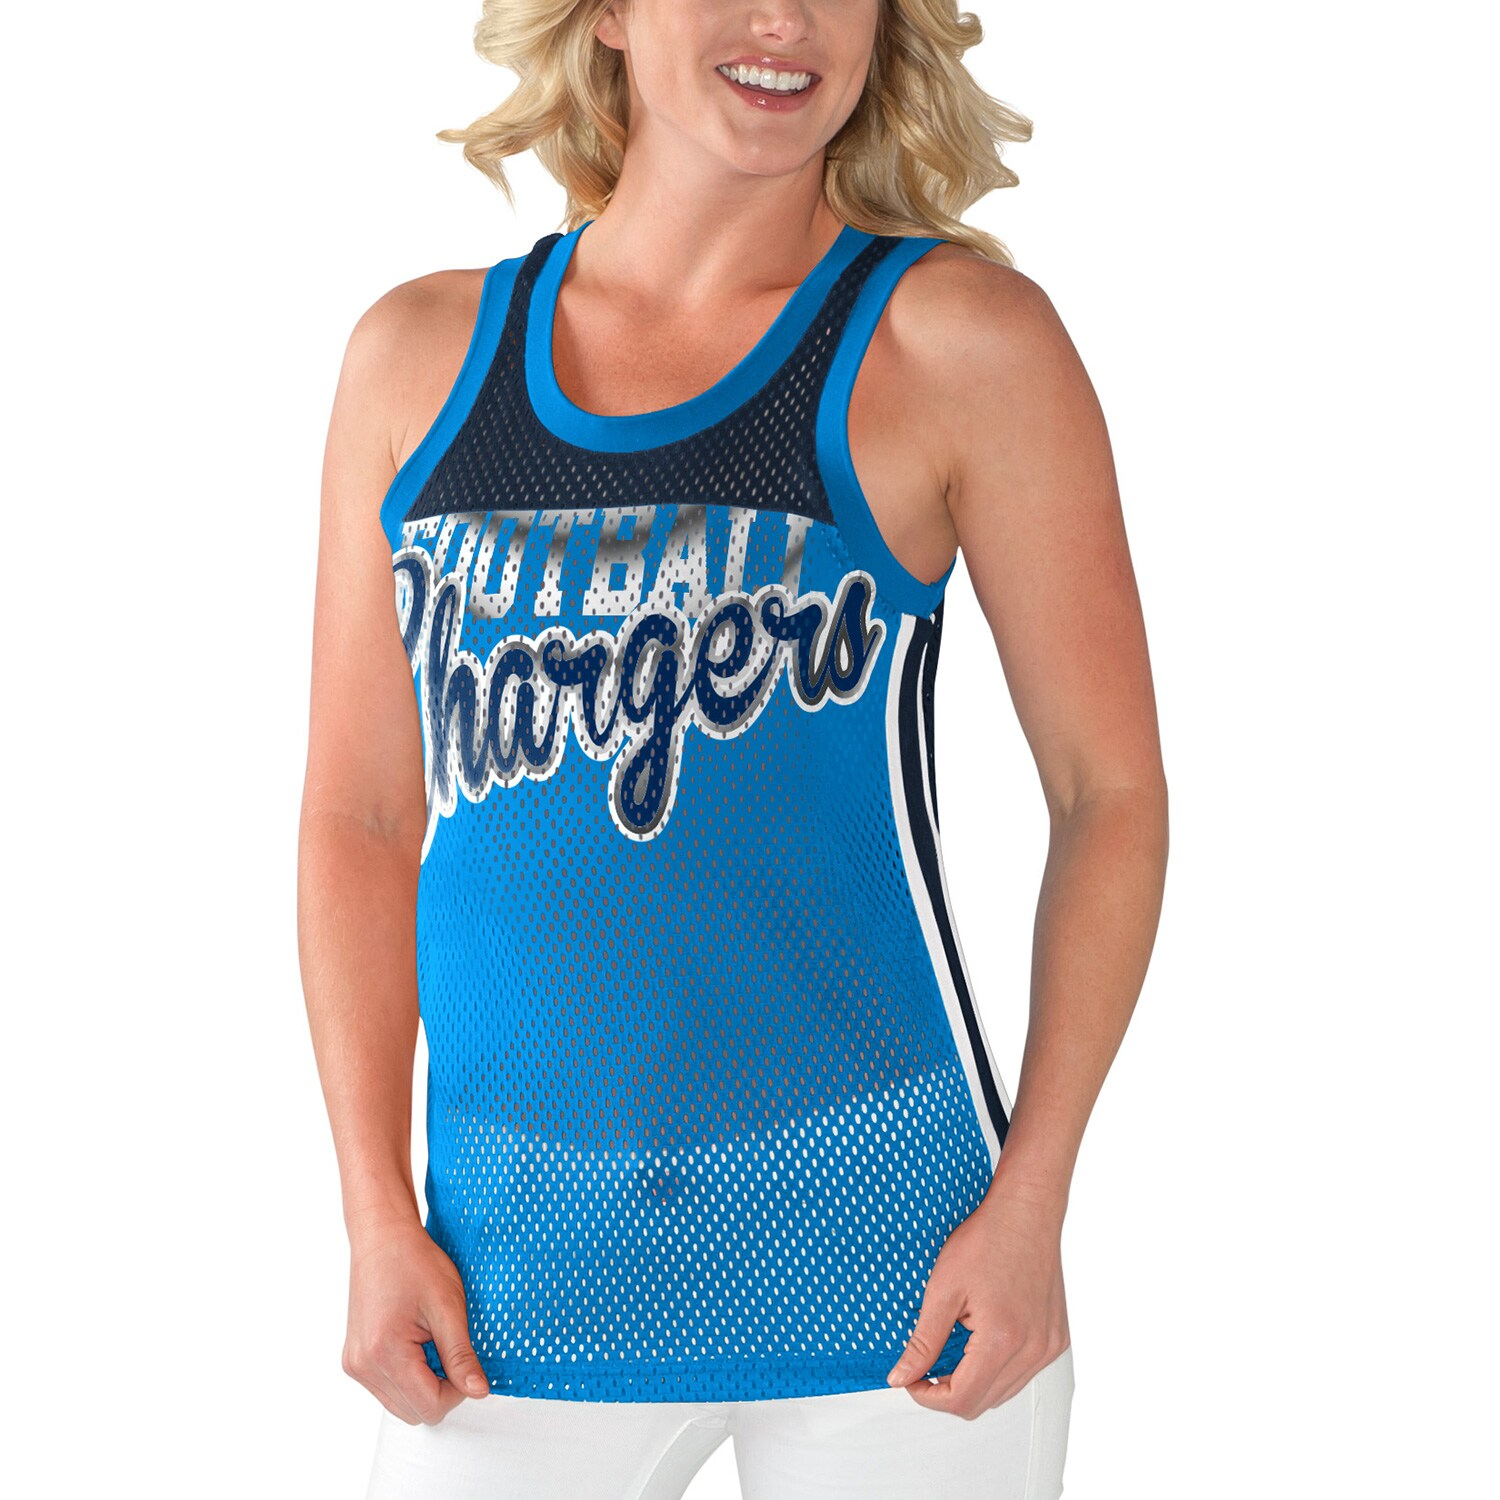 Los Angeles Chargers G-III 4Her by Carl Banks Women's Championship Mesh Tank Top - Light Blue/Navy